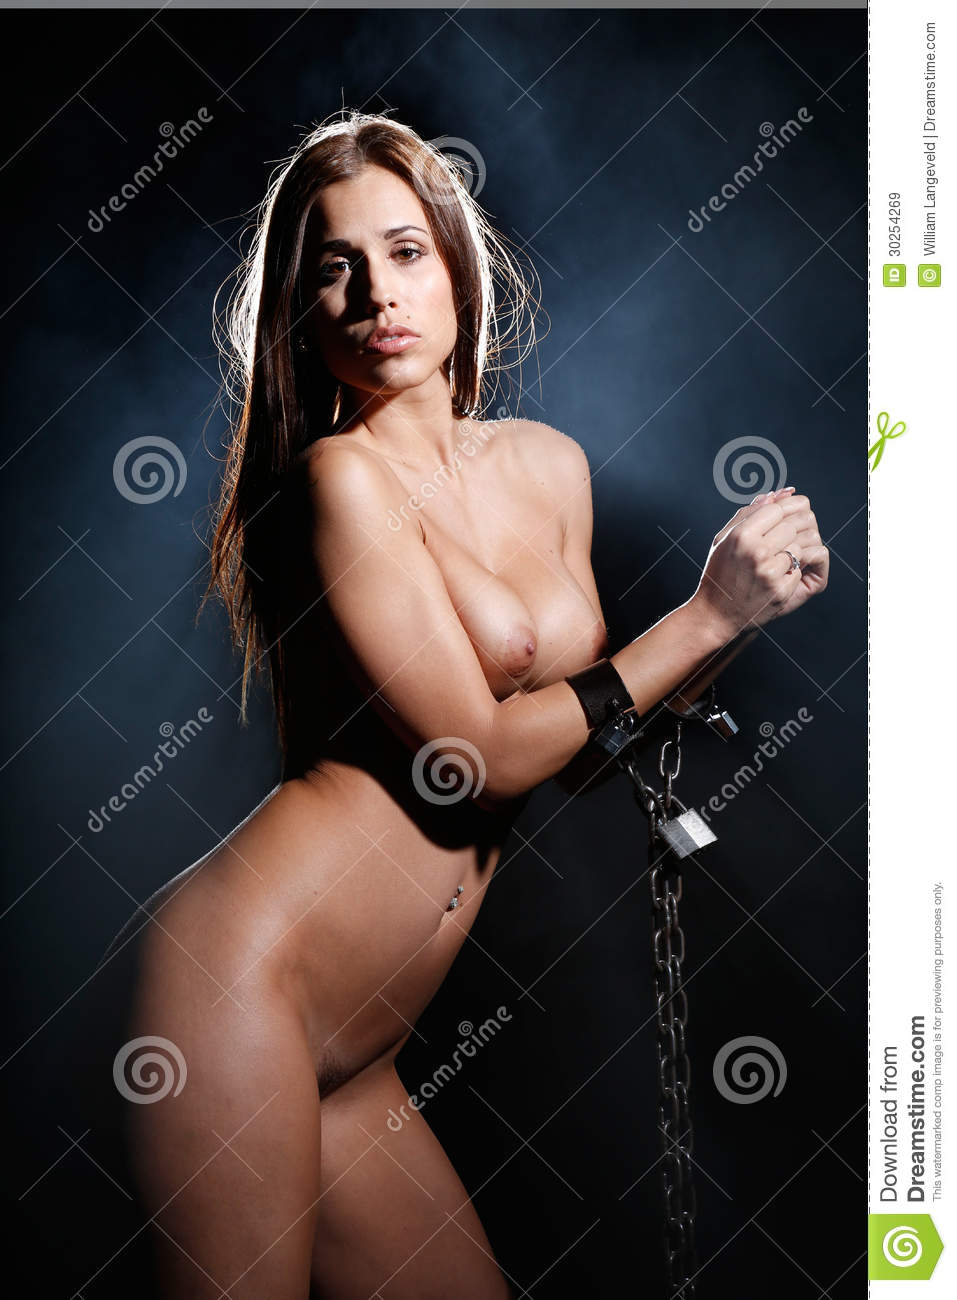 Models in chain bondage